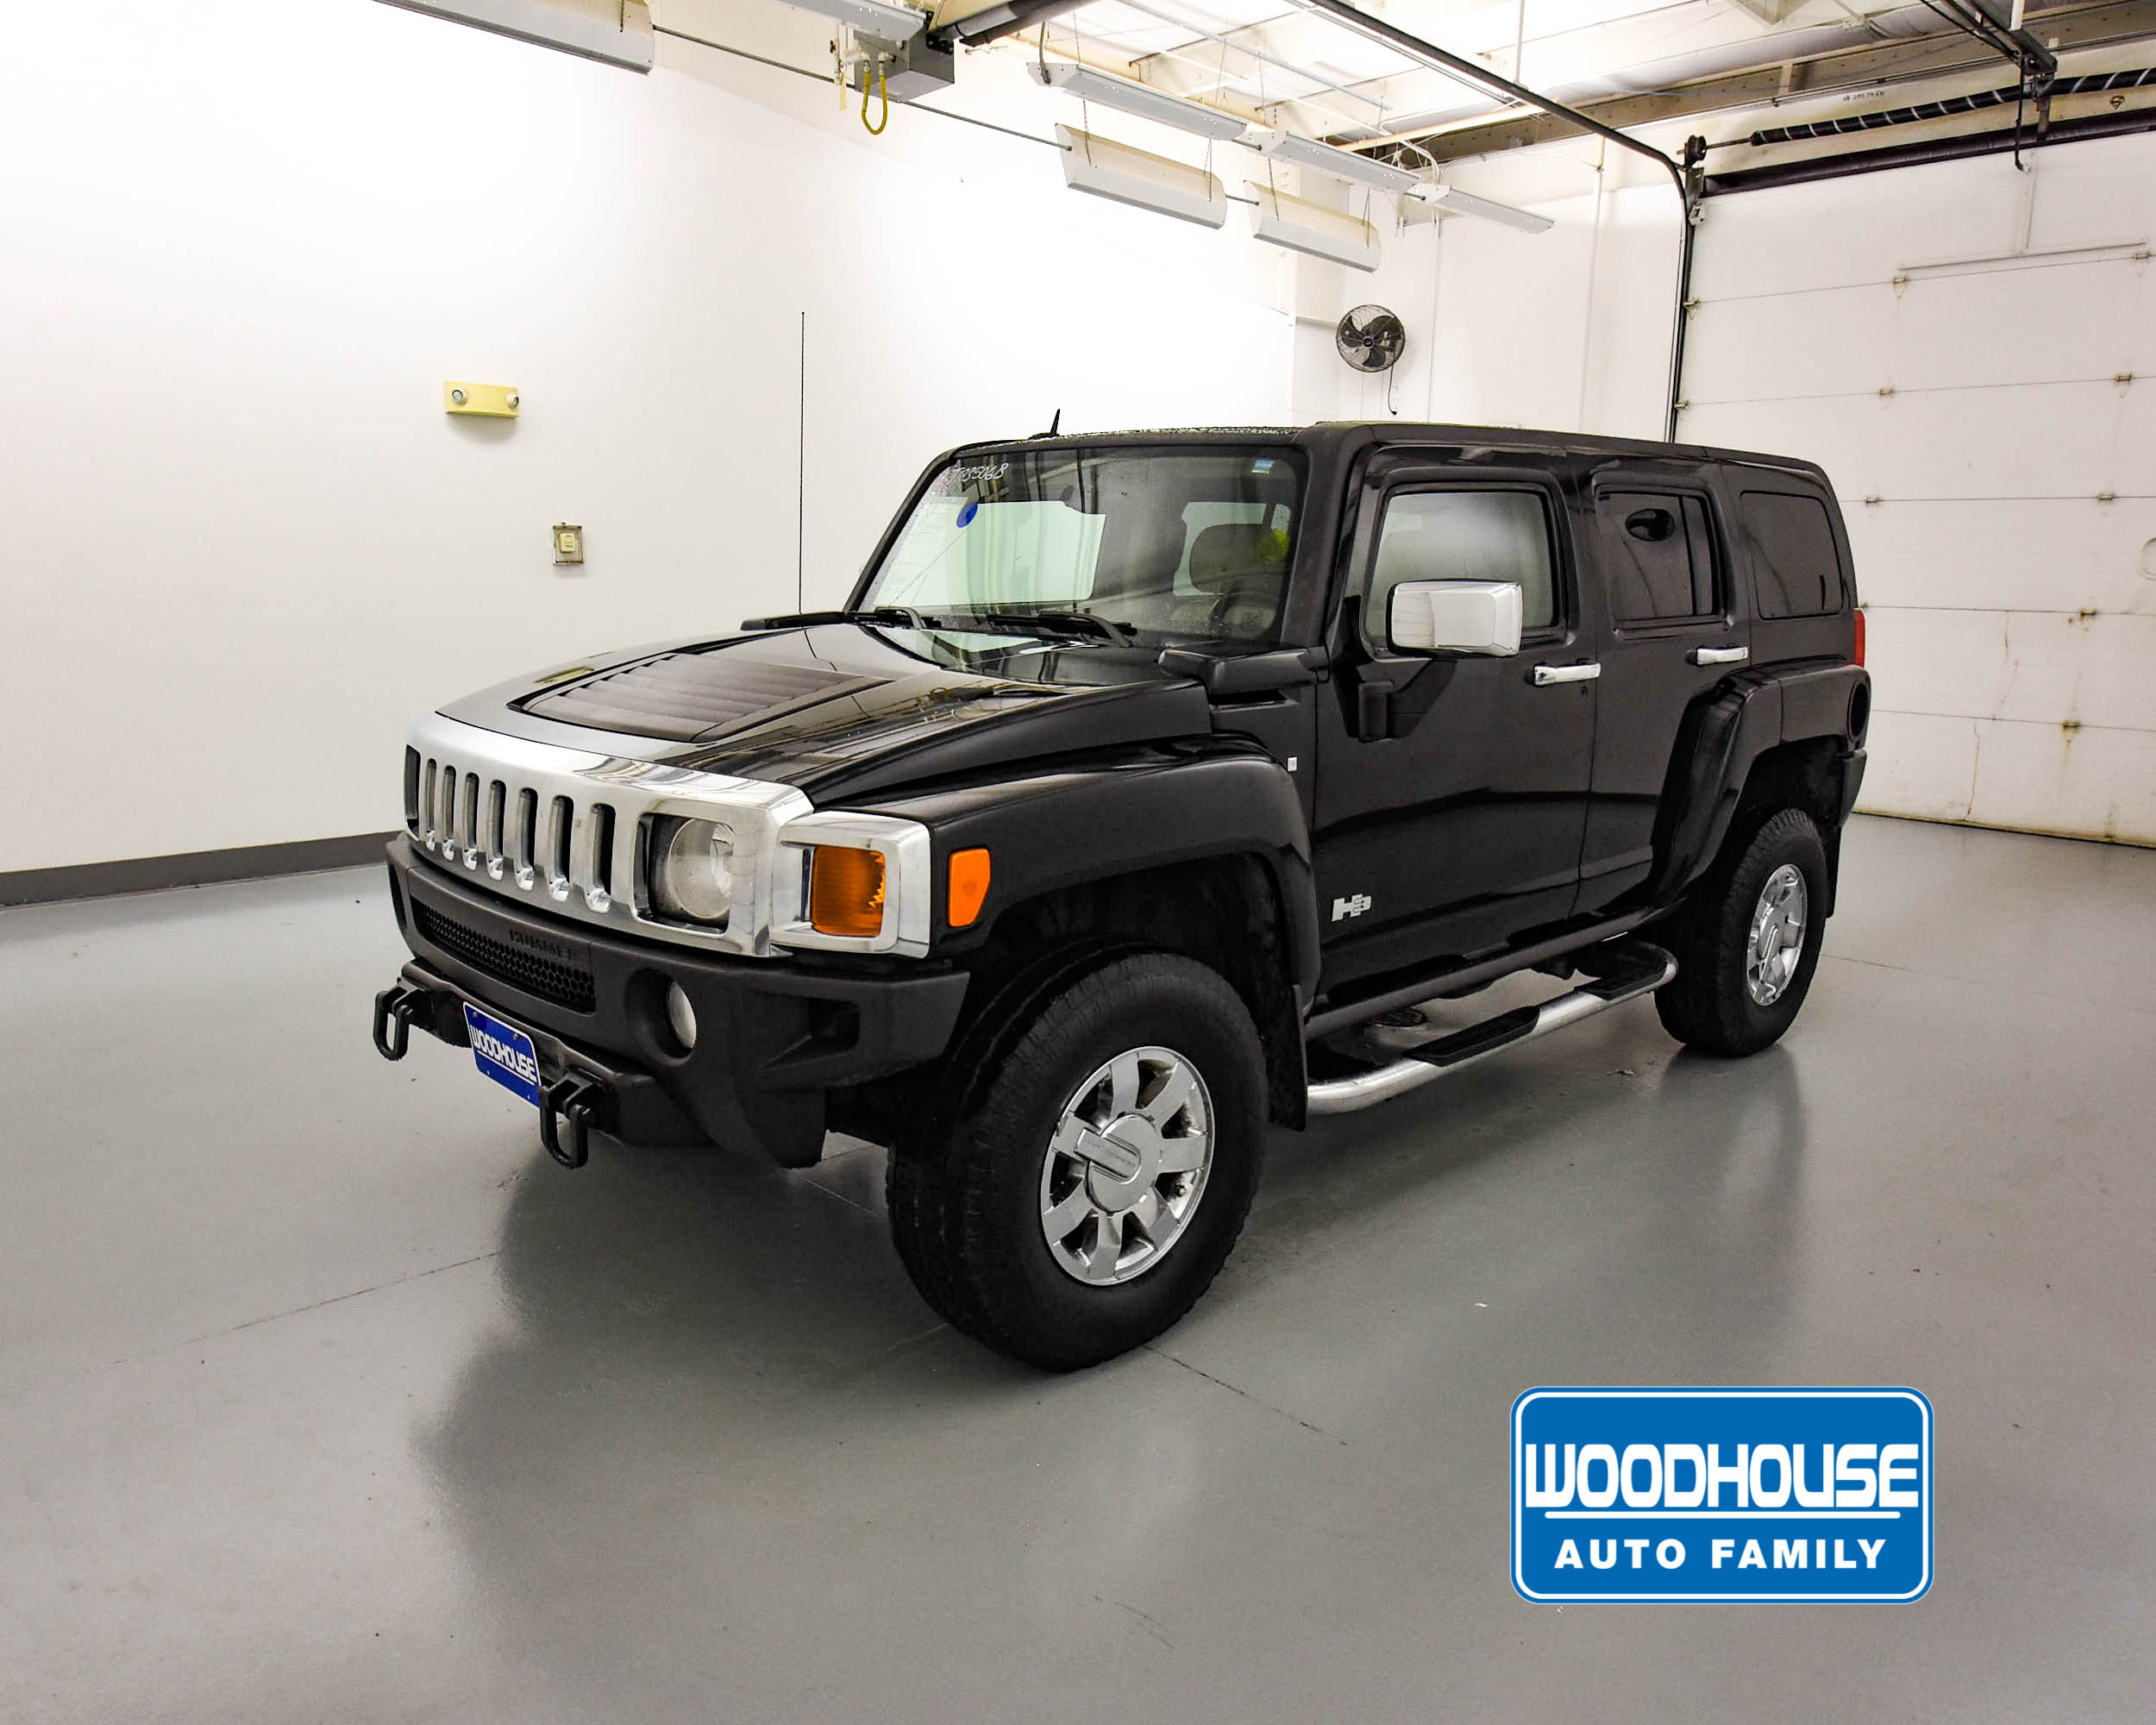 Woodhouse | Used 12 Hummer H12 For Sale | Auction (Blair) | 2006 hummer h3 parts accessories